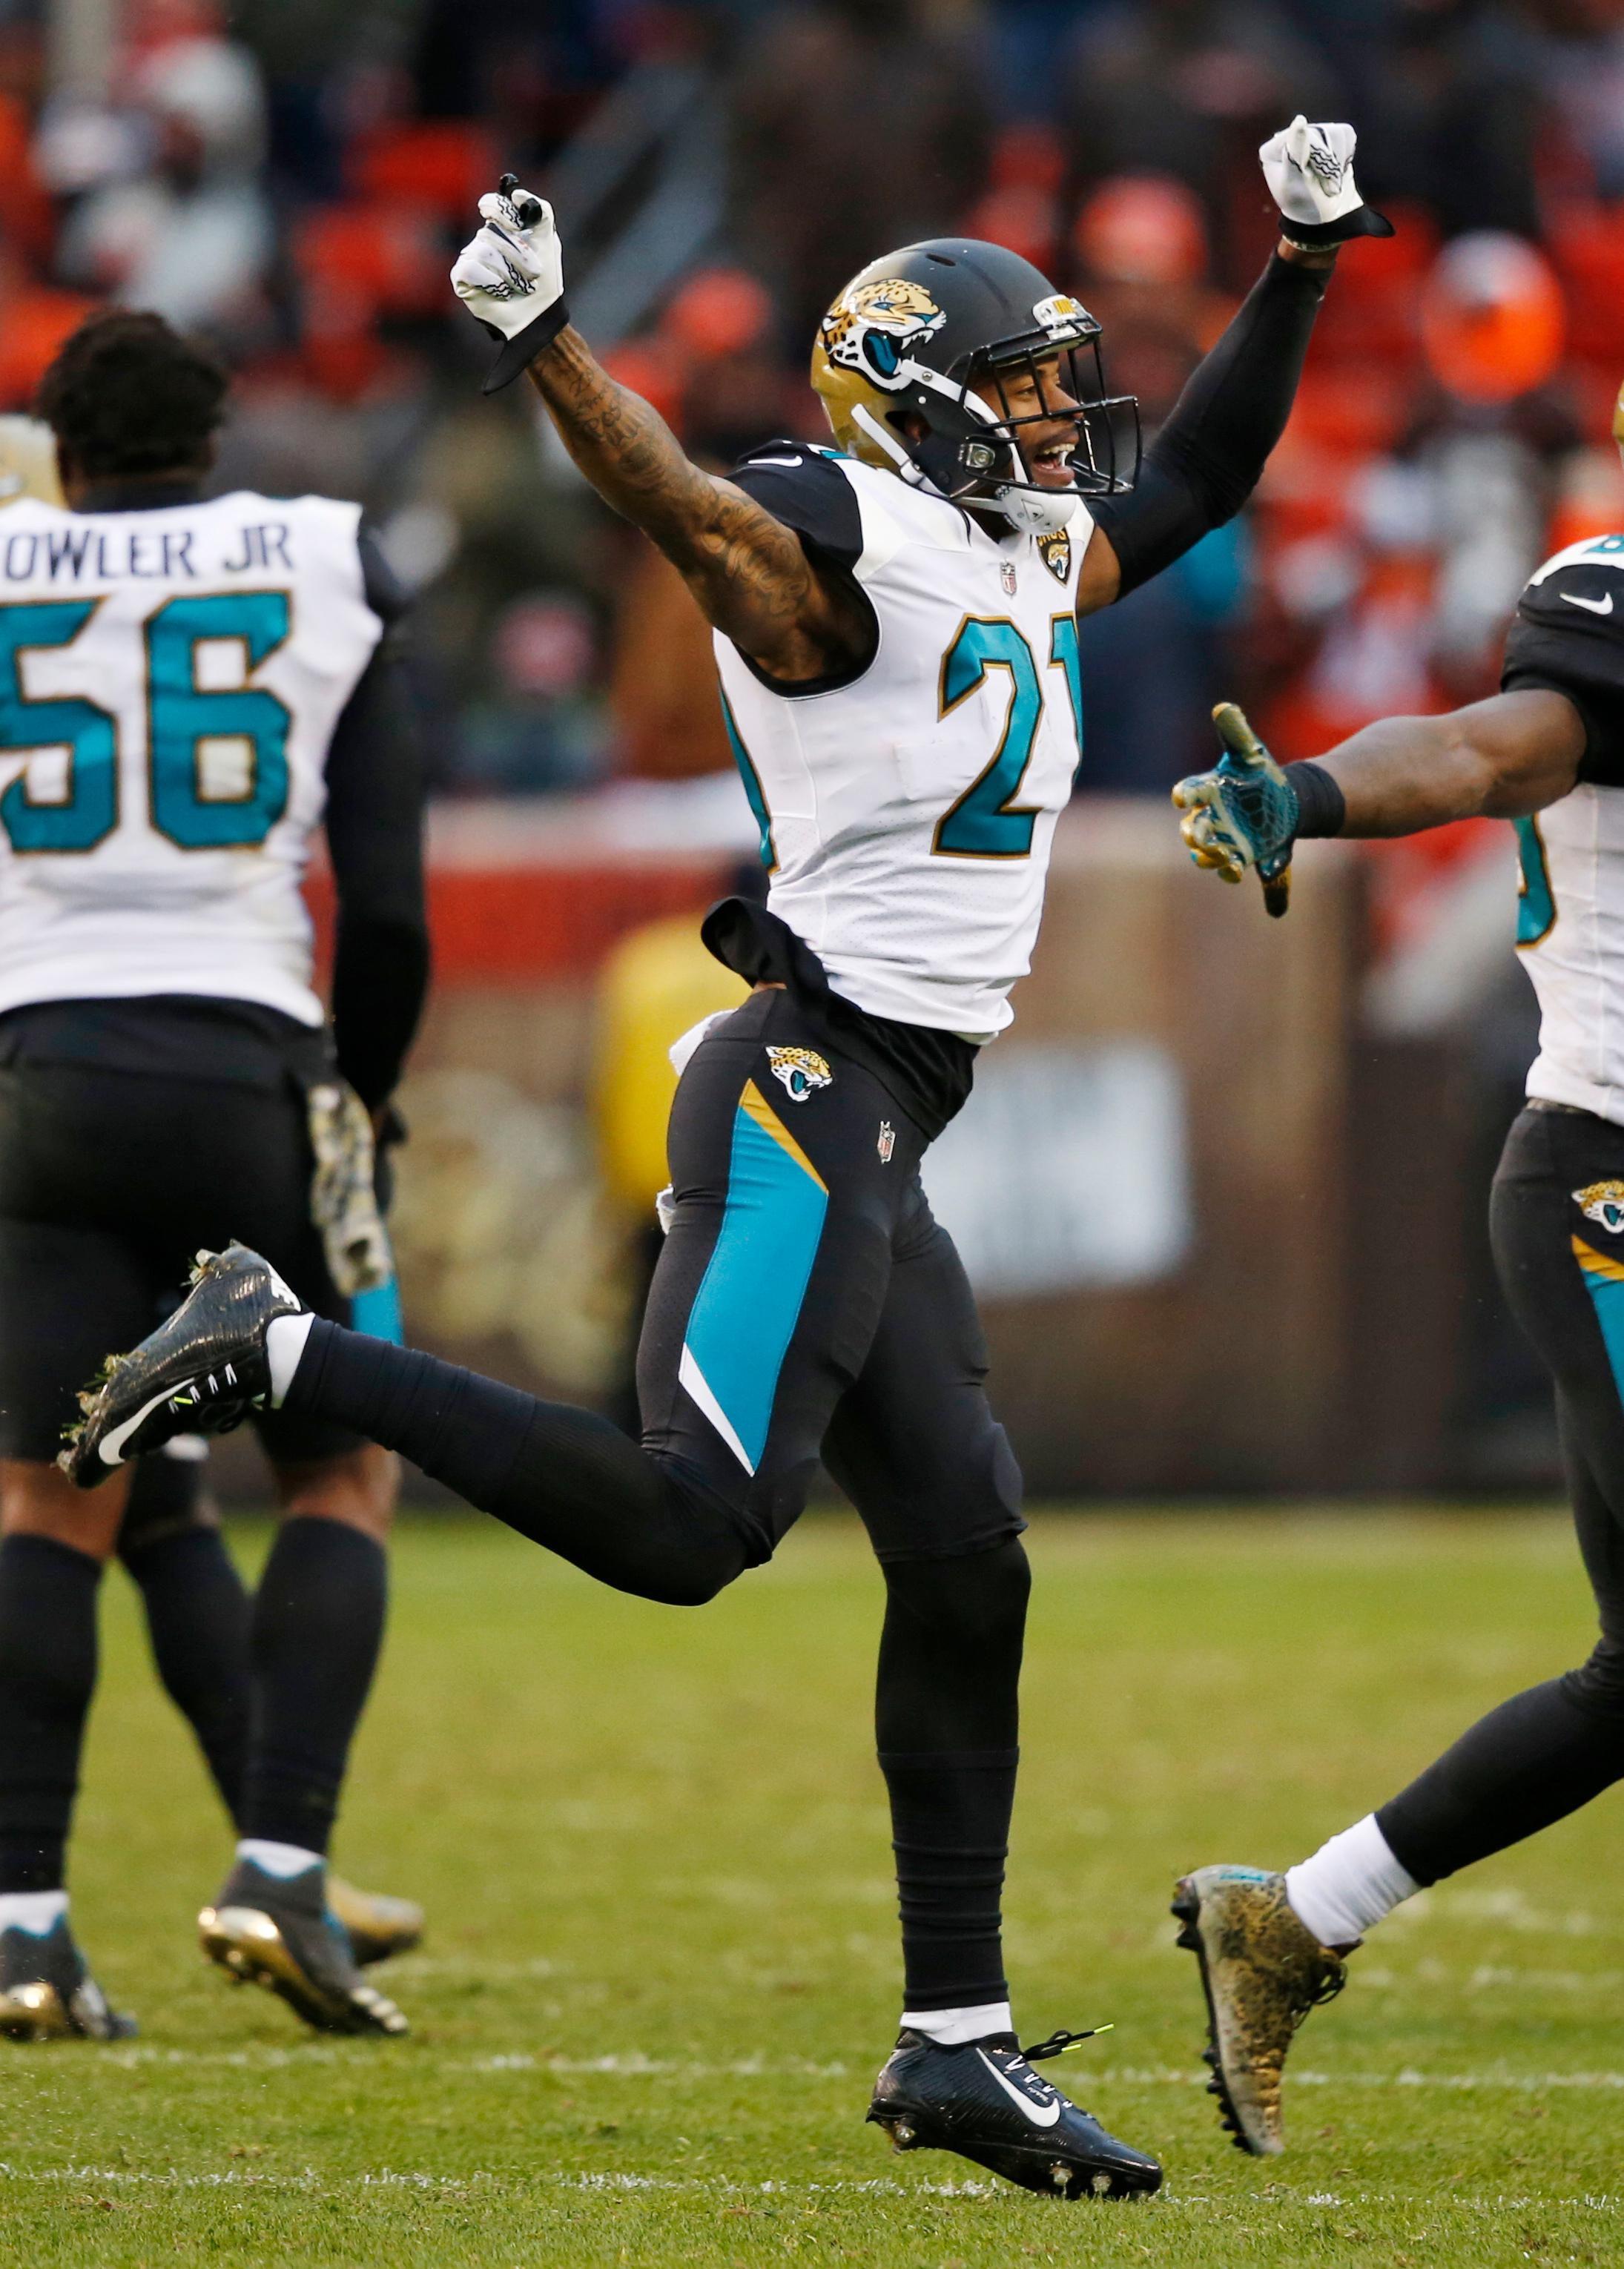 Jacksonville Jaguars cornerback A.J. Bouye (21) celebrates after his team recovered a fumble in the second half of an NFL football game against the Cleveland Browns, Sunday, Nov. 19, 2017, in Cleveland. (AP Photo/Ron Schwane)